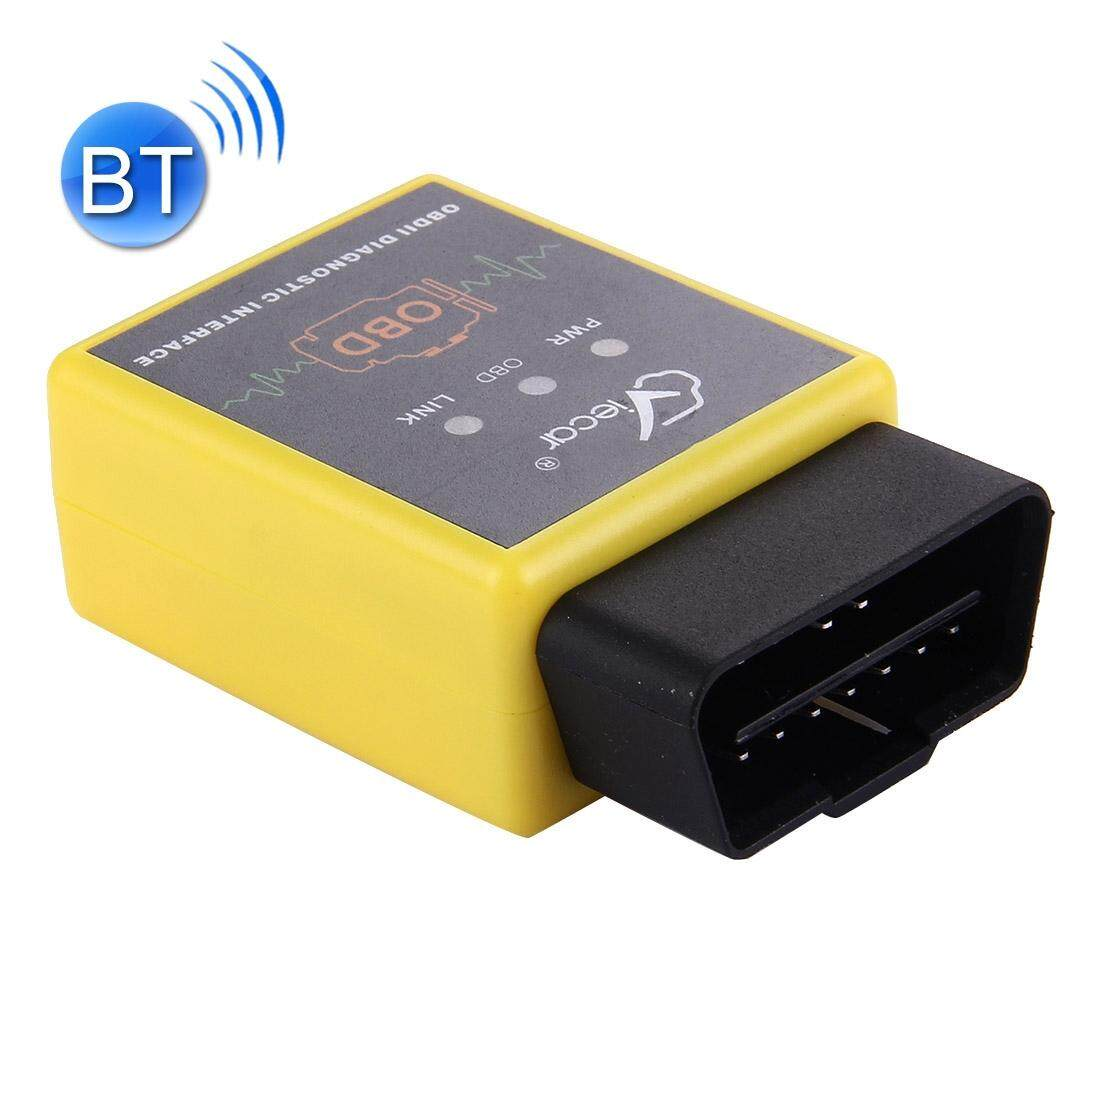 Viecar VC002-A Mini OBDII ELM327 Bluetooth Pemindai Mobil Alat Diagnostik, Mendukung Android/Symbian/Windows (Kuning)-Intl